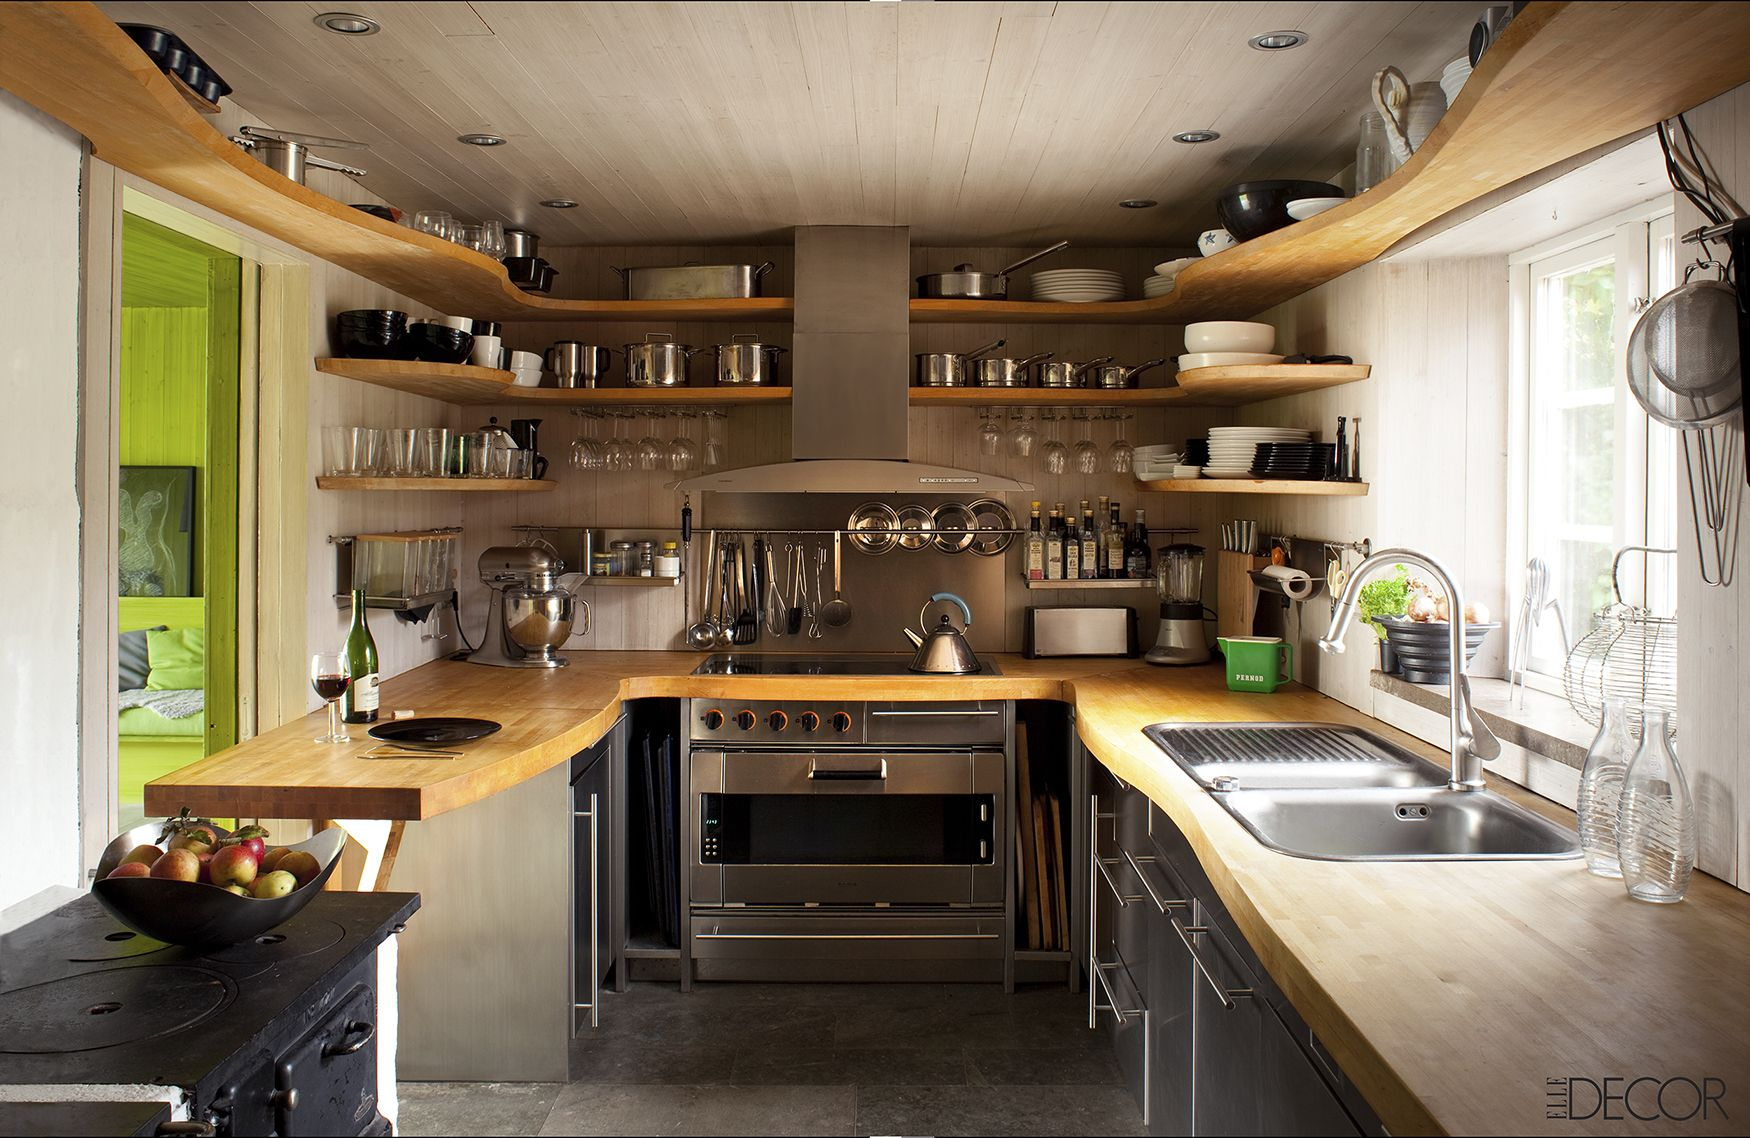 Small Kitchen Ceiling 40 Small Kitchen Design Ideas Decorating Tiny Kitchens